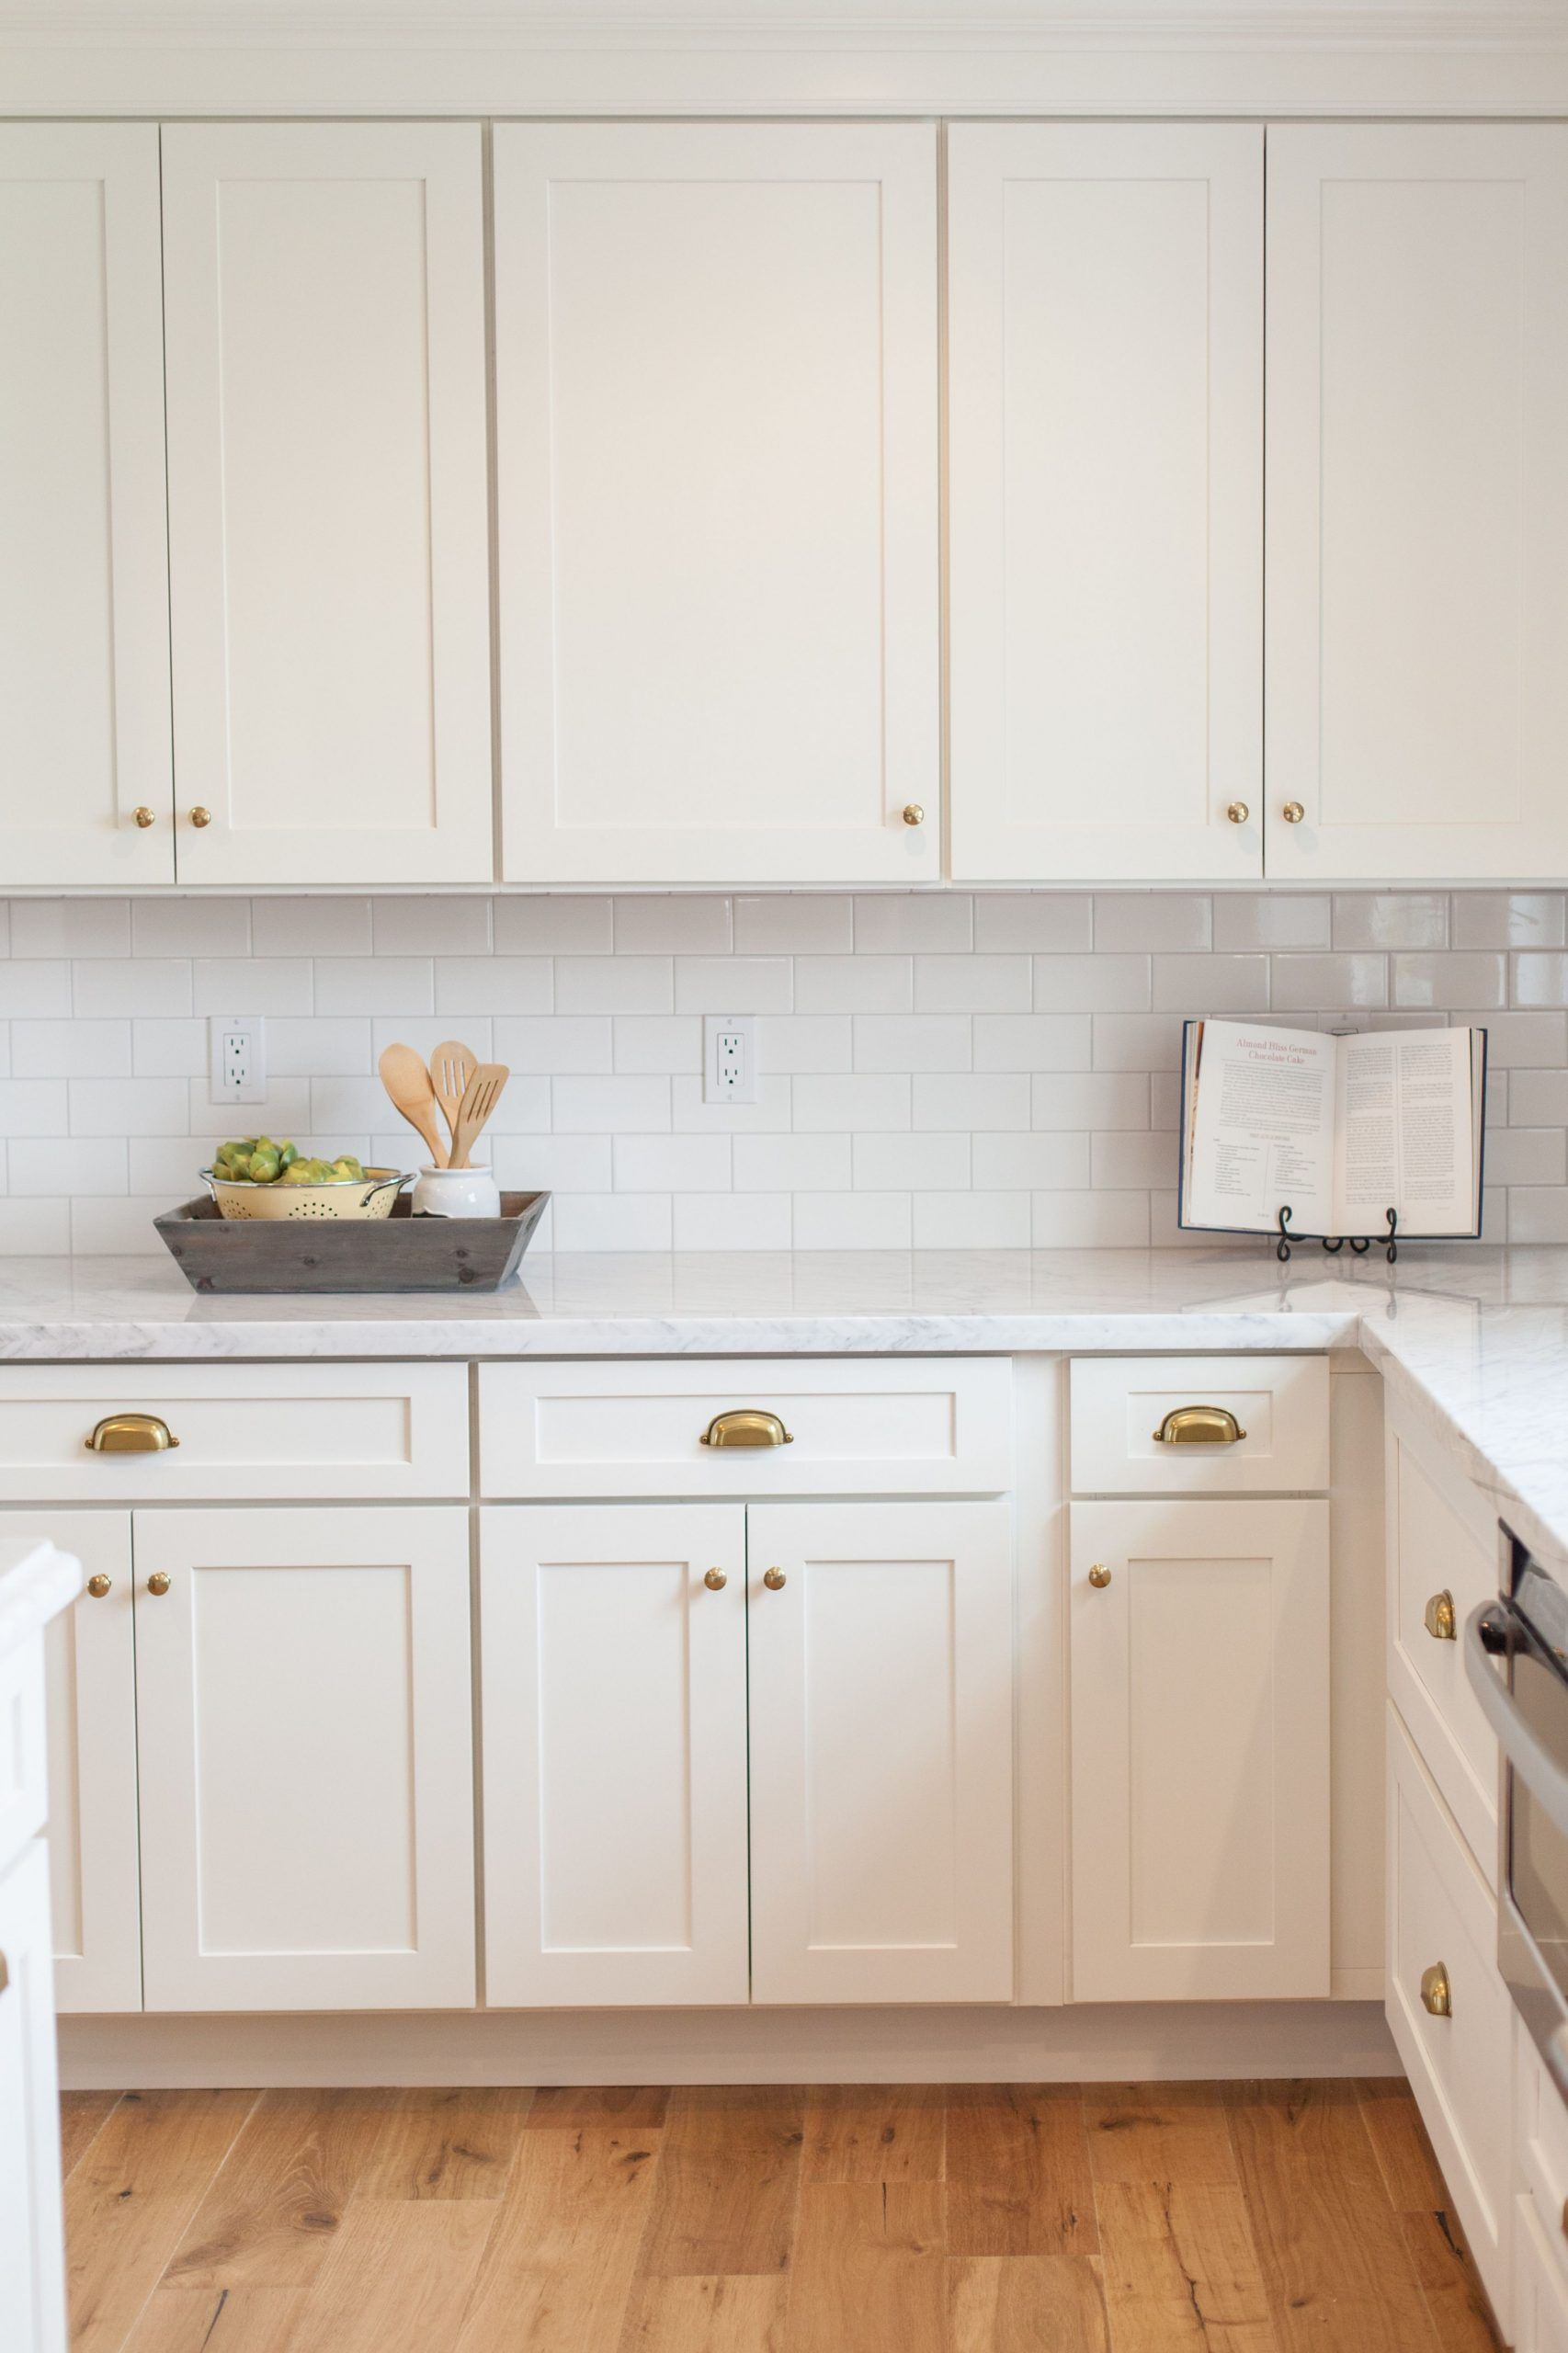 White Kitchen Cabinets With Brass Hardware In 2020 Modern White Kitchen Cabinets Shaker Style Kitchen Cabinets Kitchen Cabinet Styles